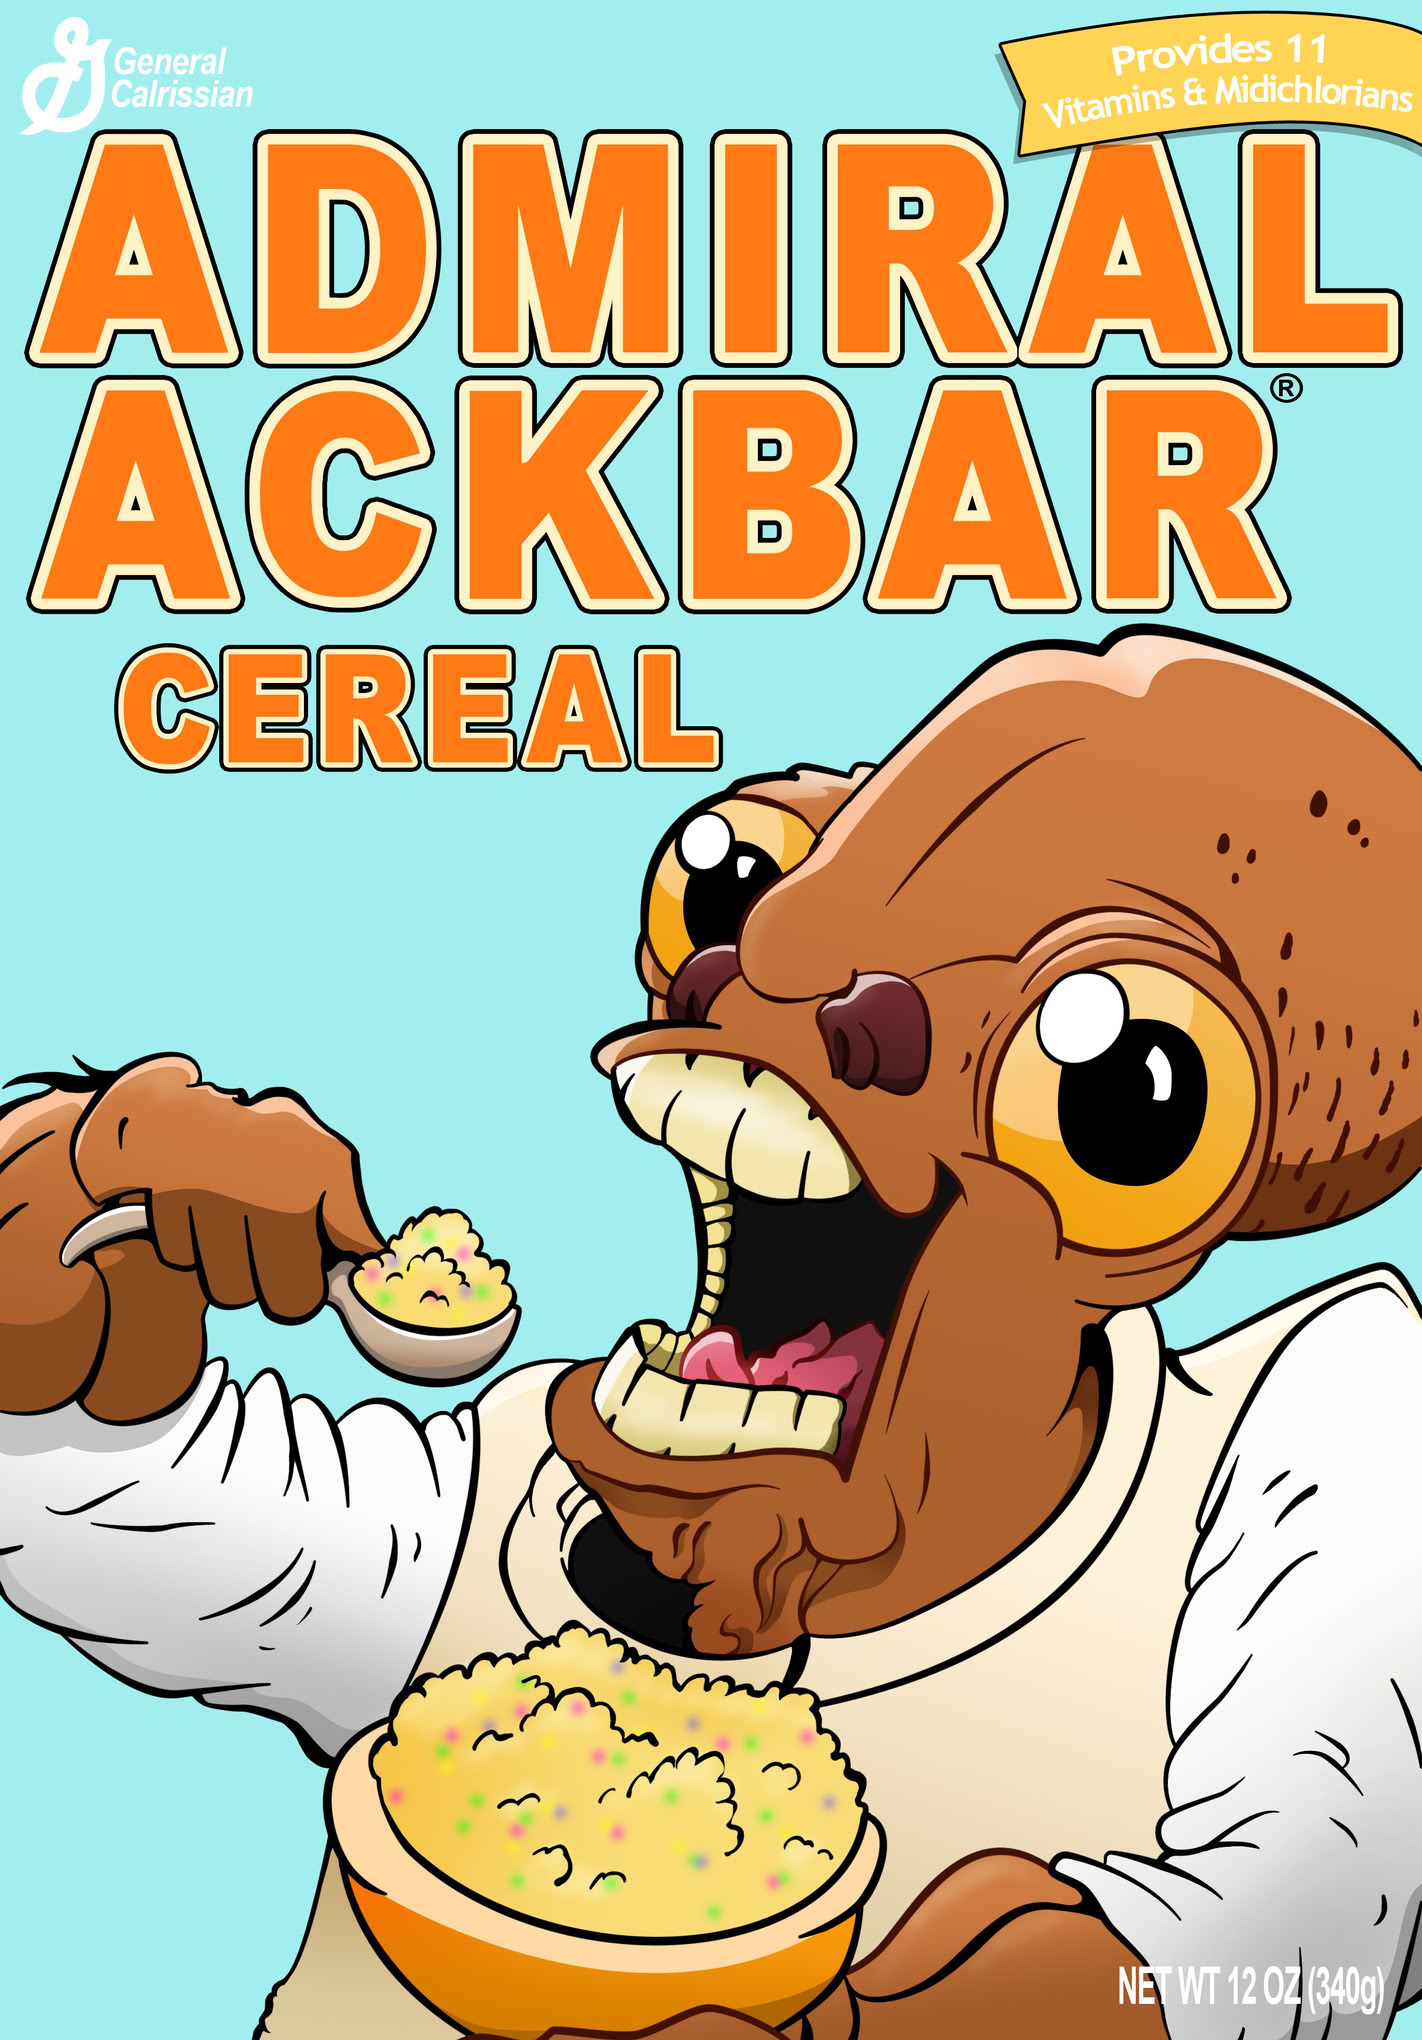 Admiral_Ackbar_Cereal_by_PaintSwatc